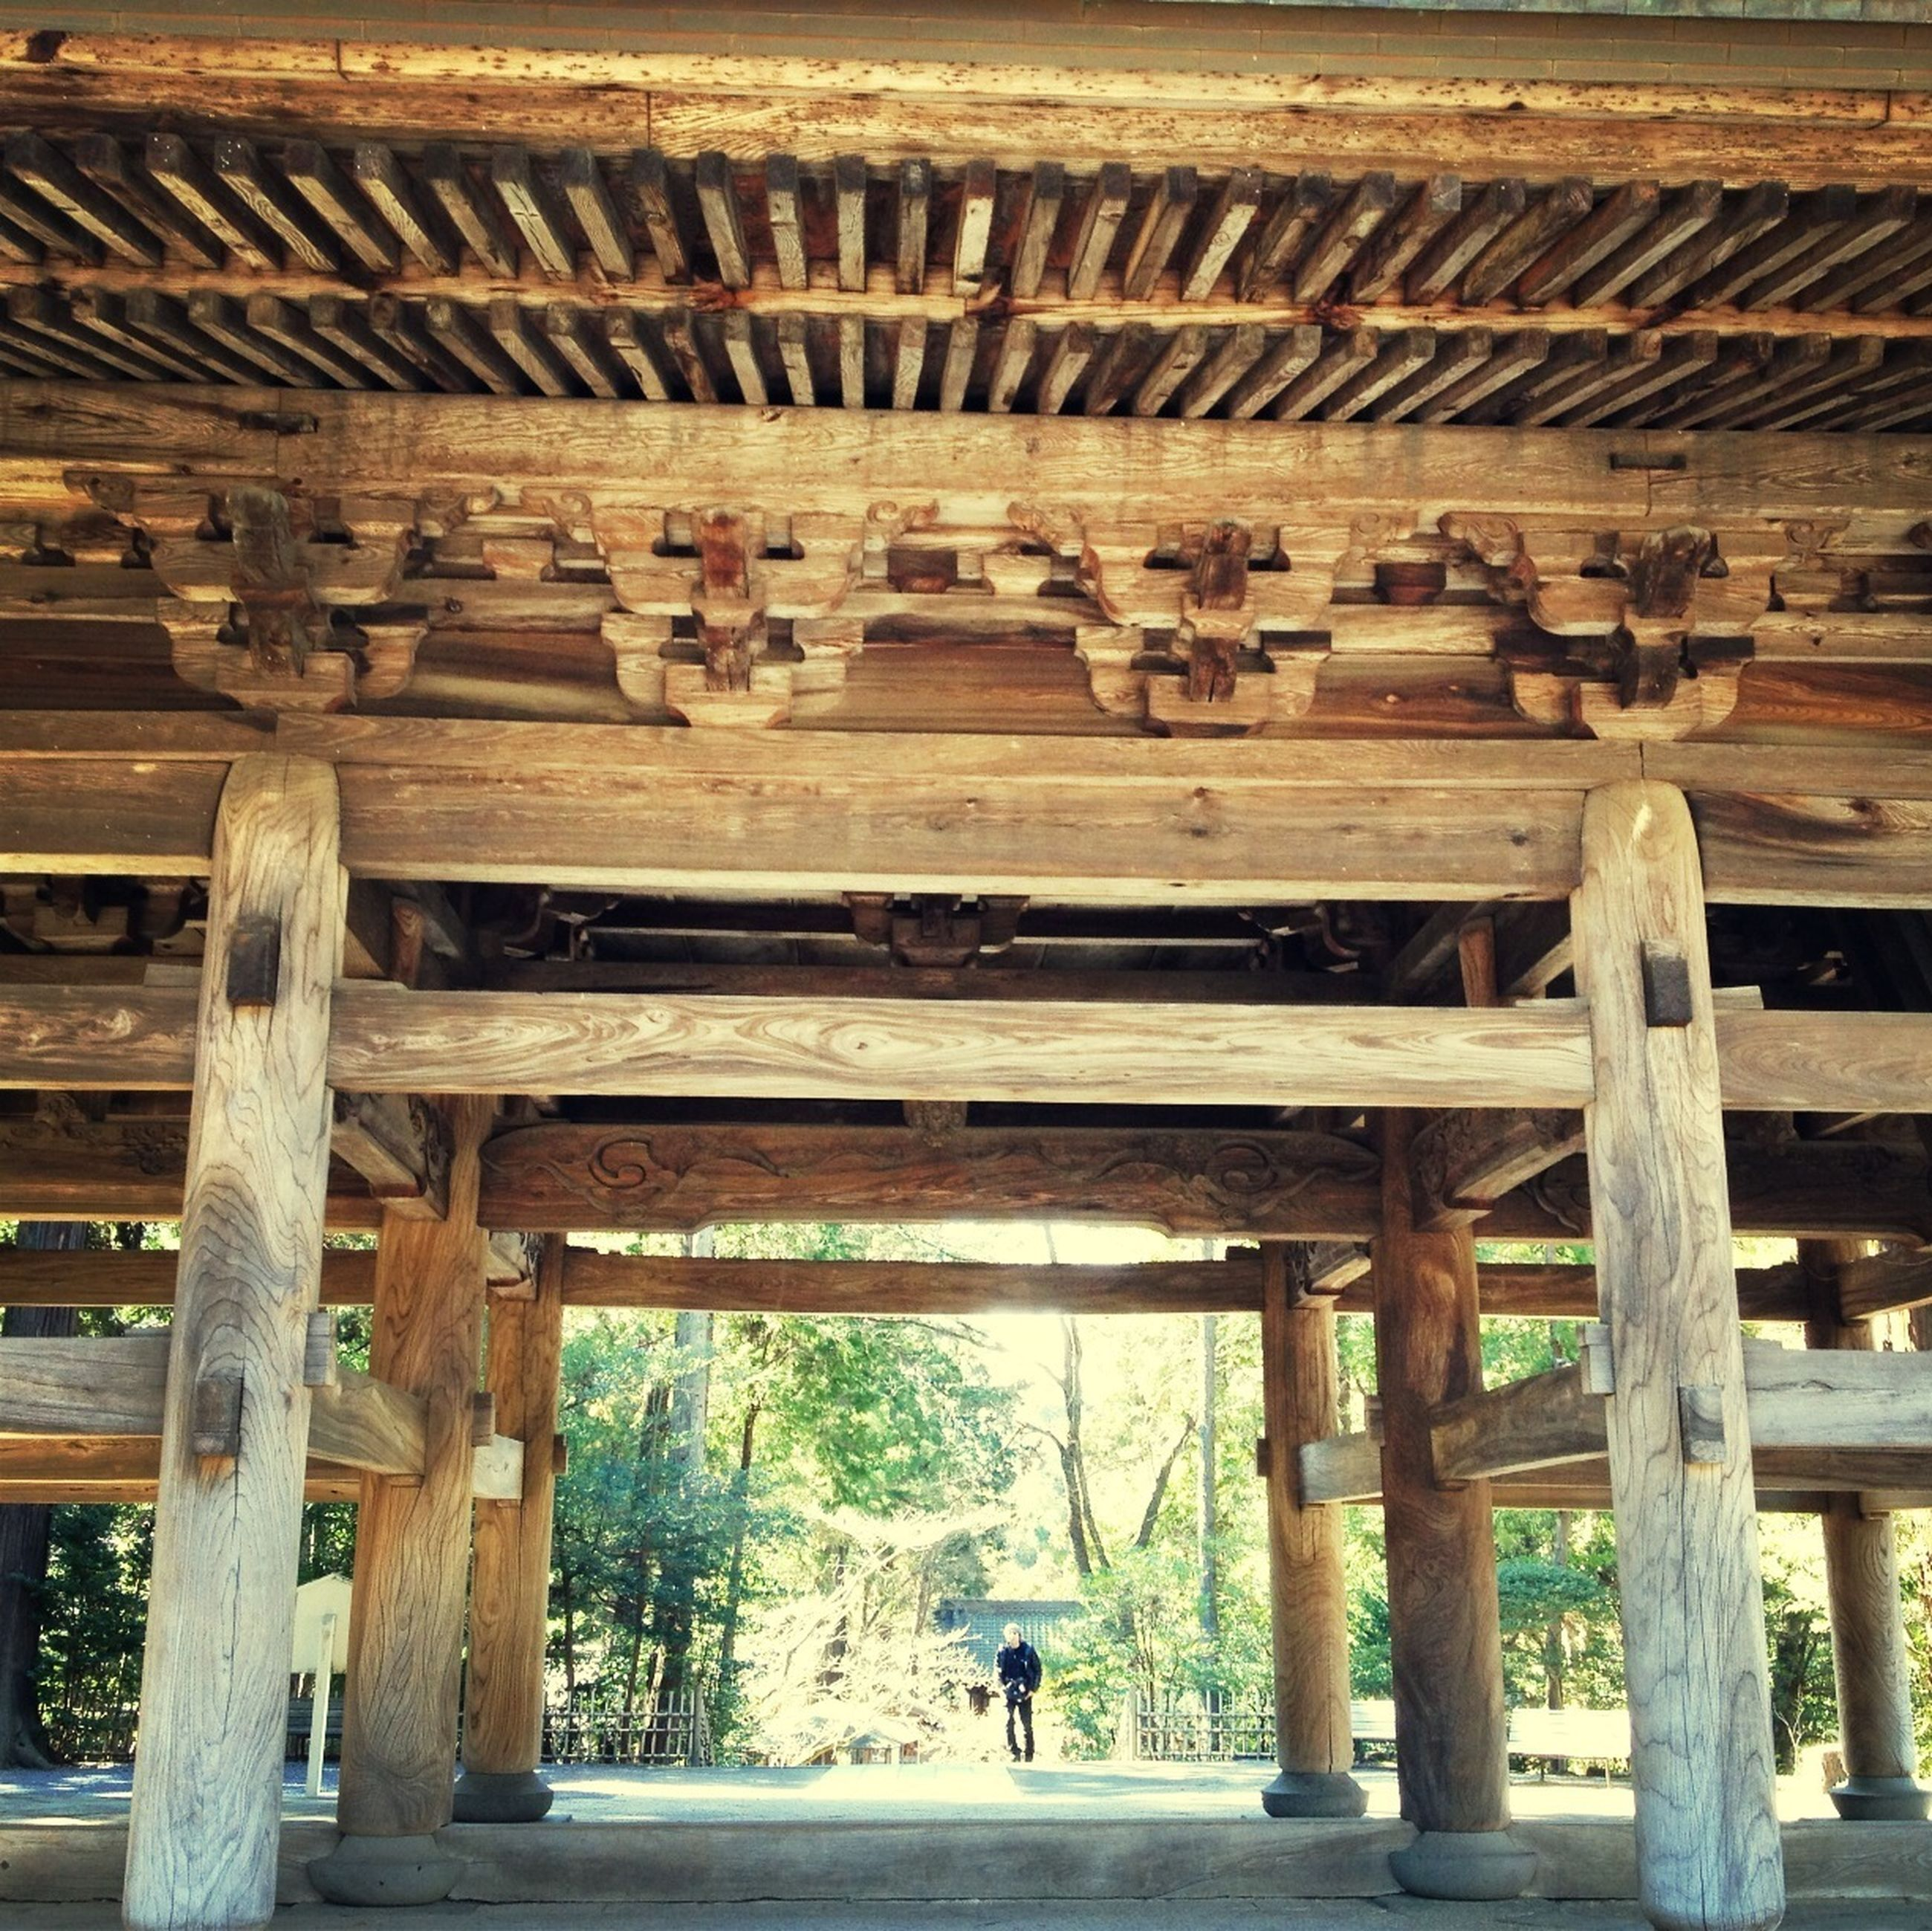 built structure, men, architecture, lifestyles, person, leisure activity, full length, architectural column, wood - material, walking, rear view, water, indoors, travel, pier, arch, tourist